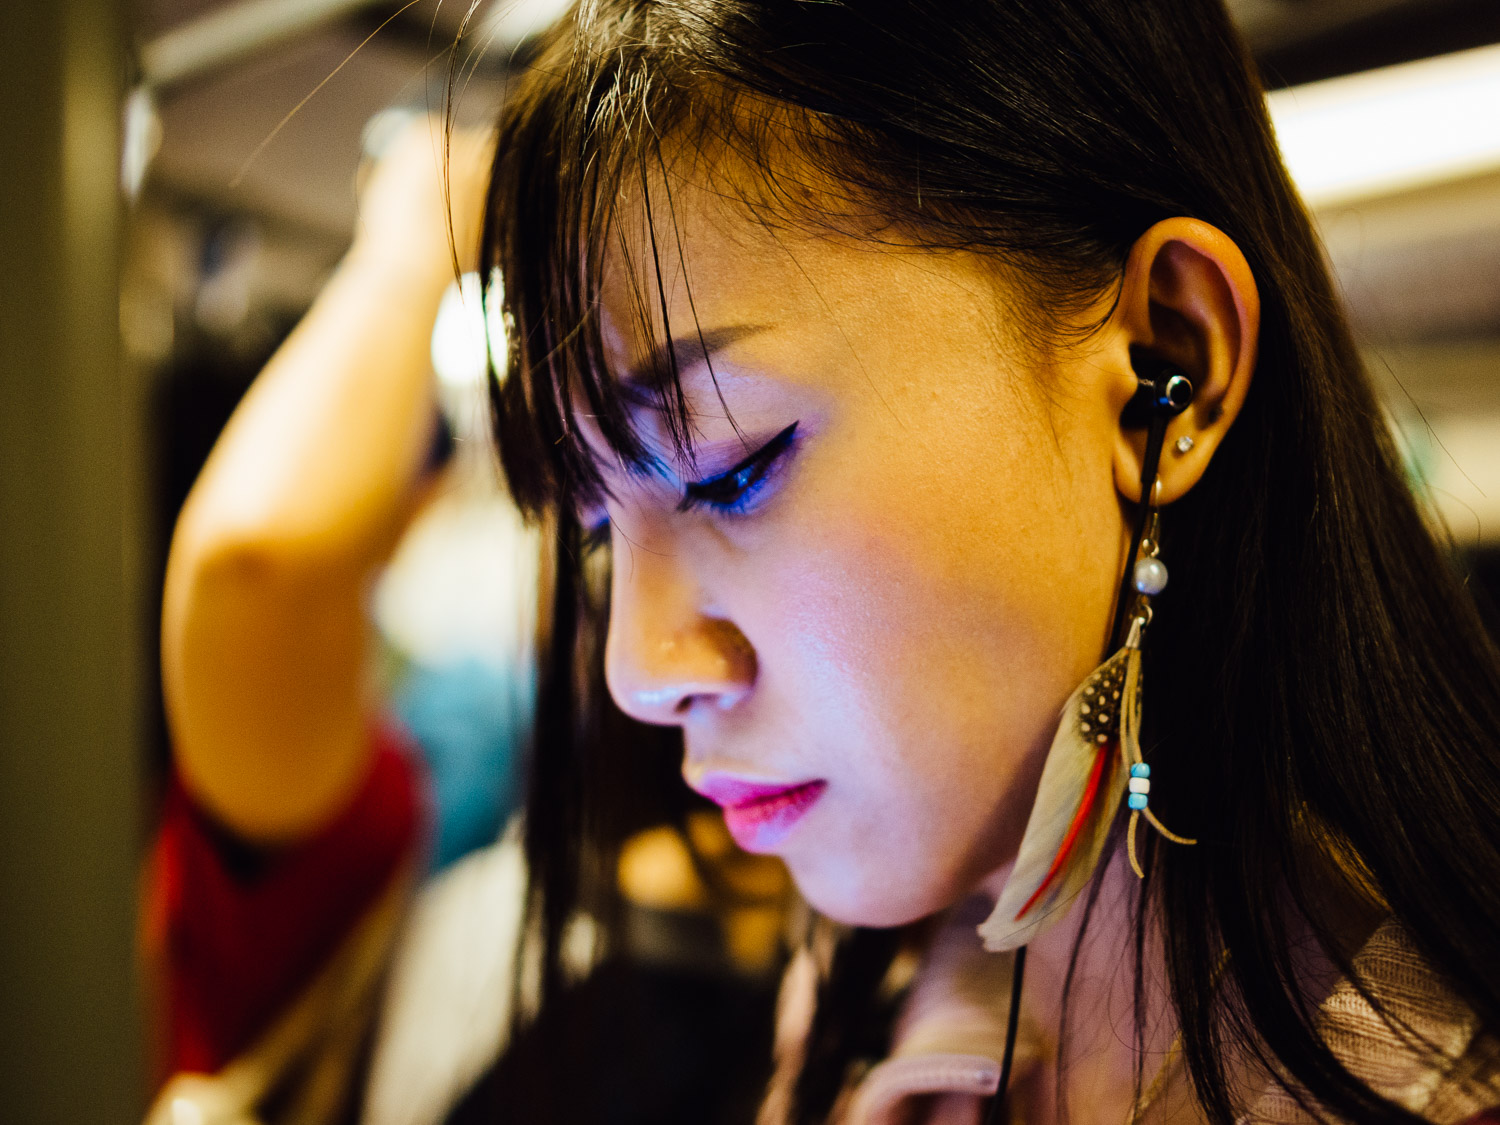 I took this photo on Bangkok's Sky Train. This woman never realized that I made an image of her, and I doubt she ever will.